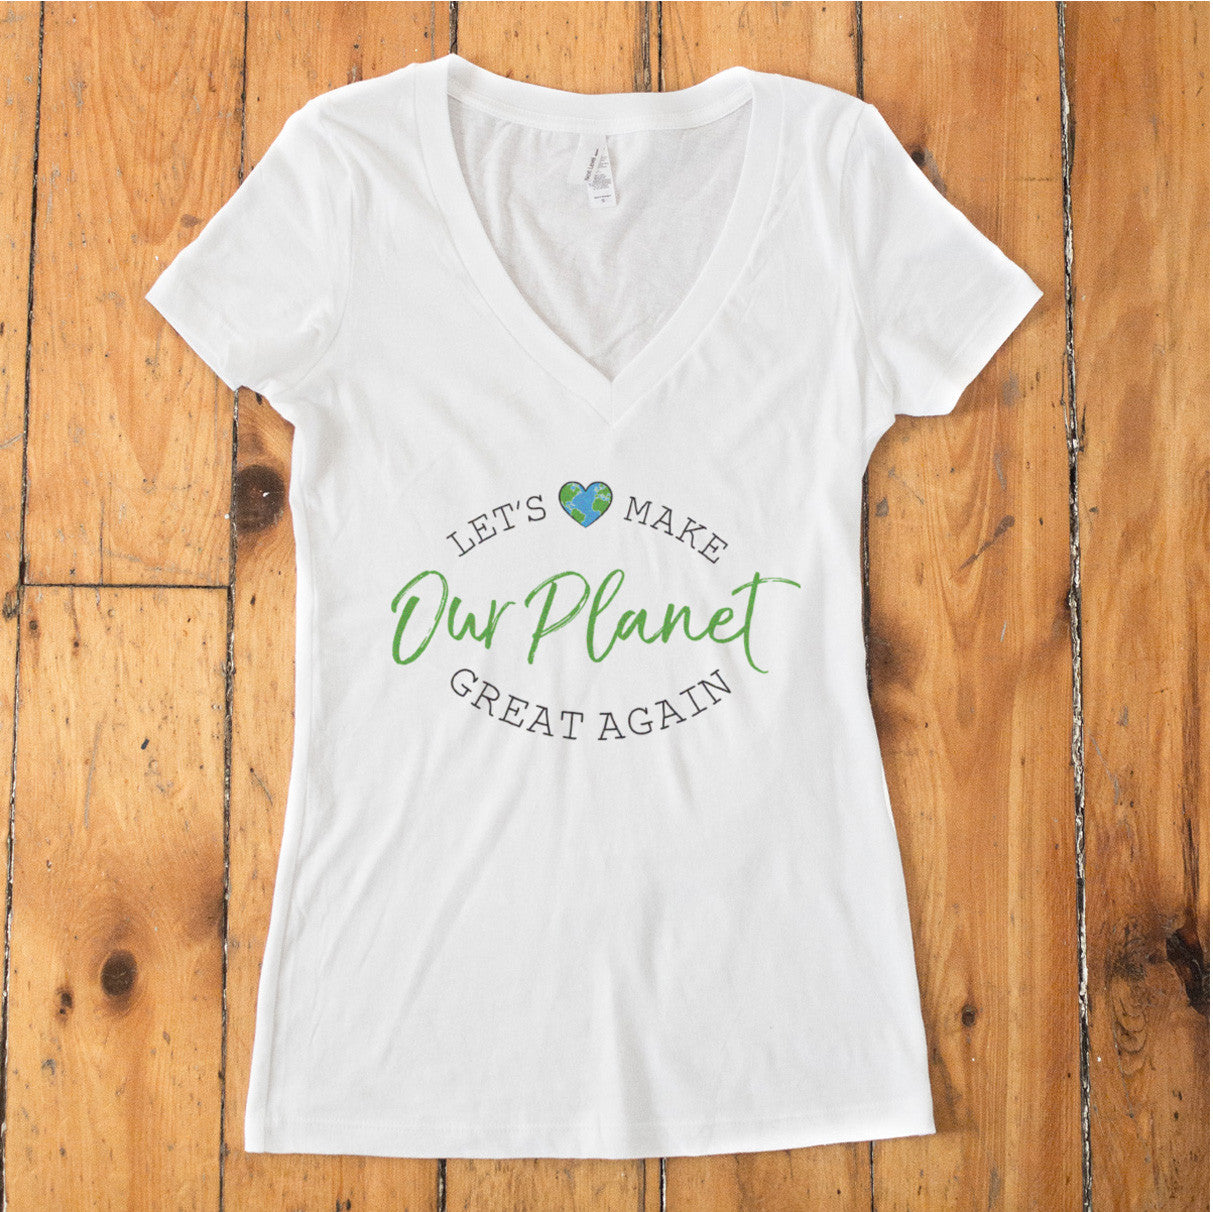 Let's Make OUR PLANET Great Again V-Neck T-Shirt - pipercleo.com